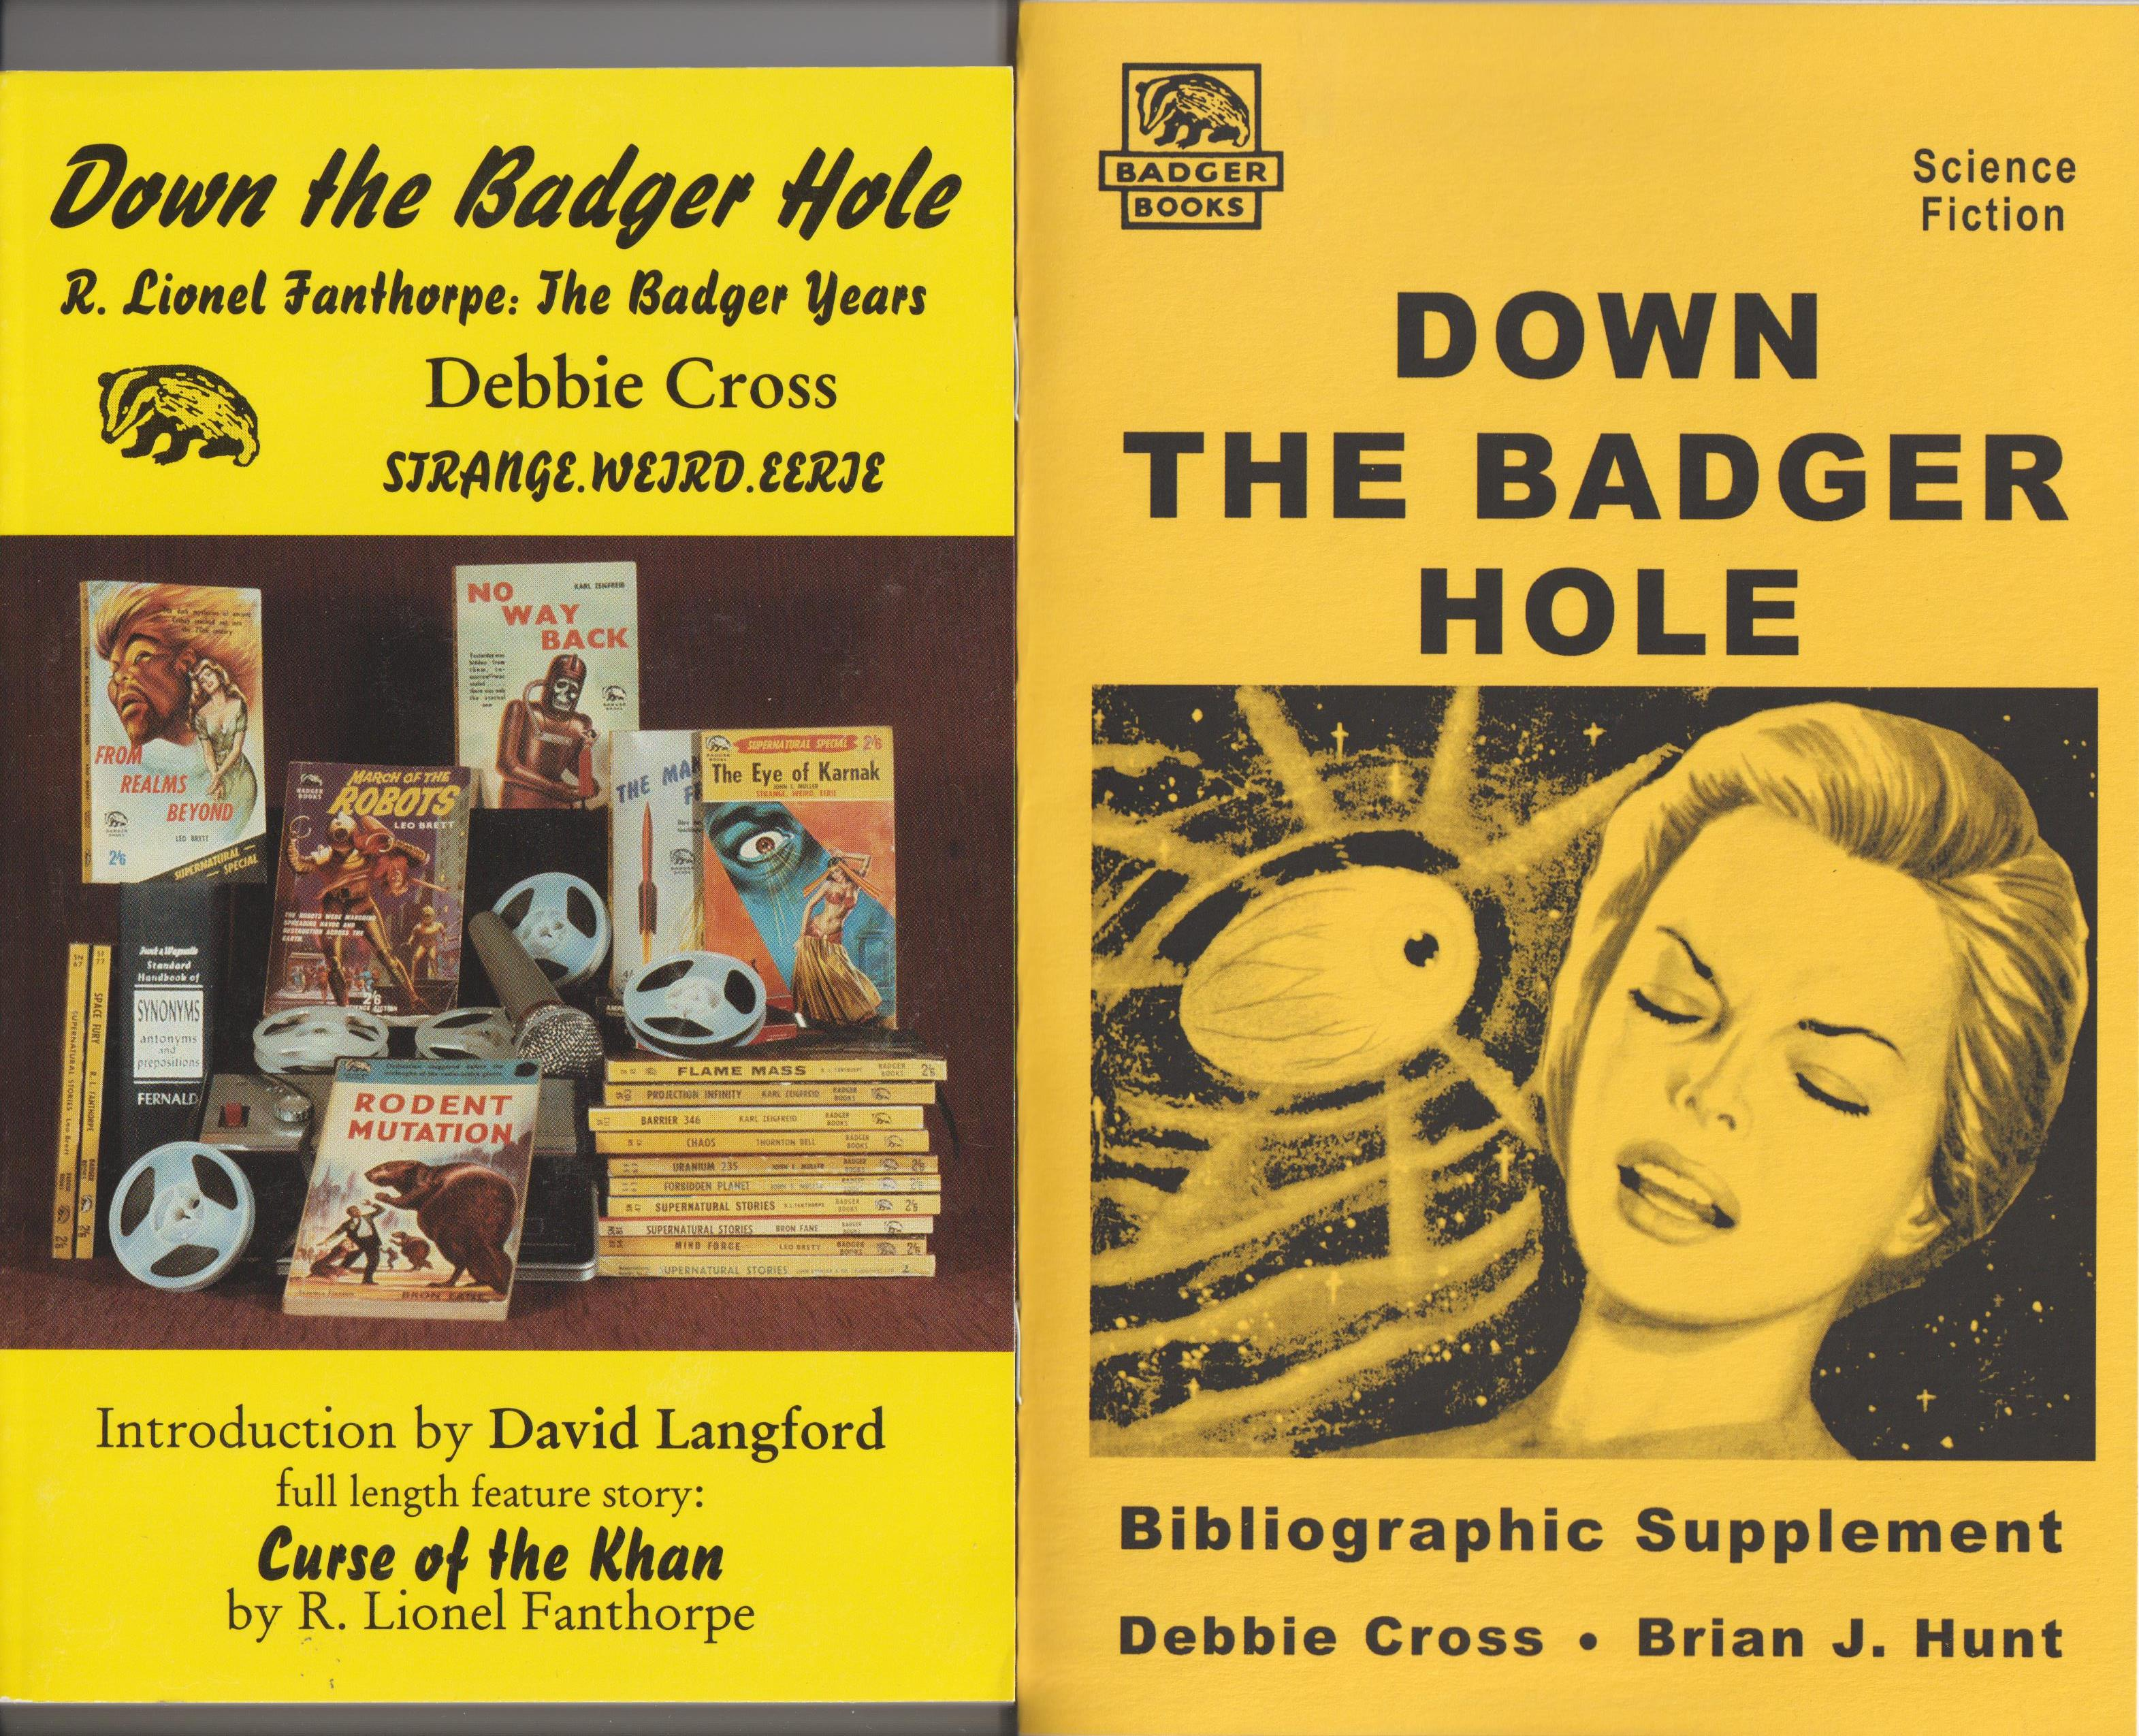 Image for Down the Badger Hole, R. Lionel Fanthorpe: The Badger Years AND Down the Badger Hole Bibliographic Supplement (2 volumes)